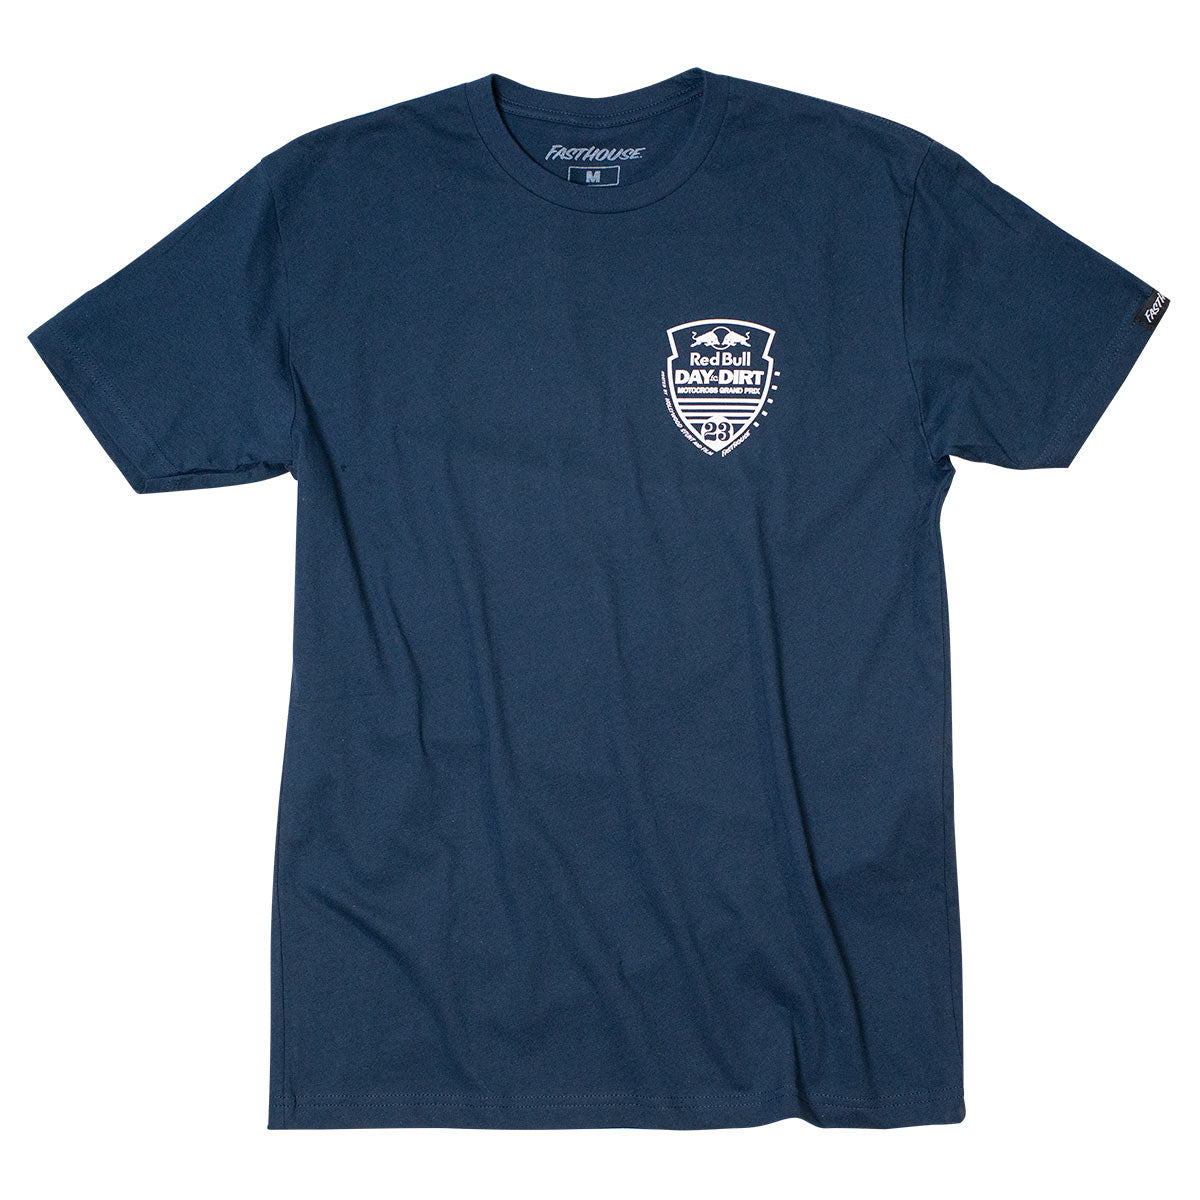 Red Bull Day in the Dirt 23 Tee - Navy